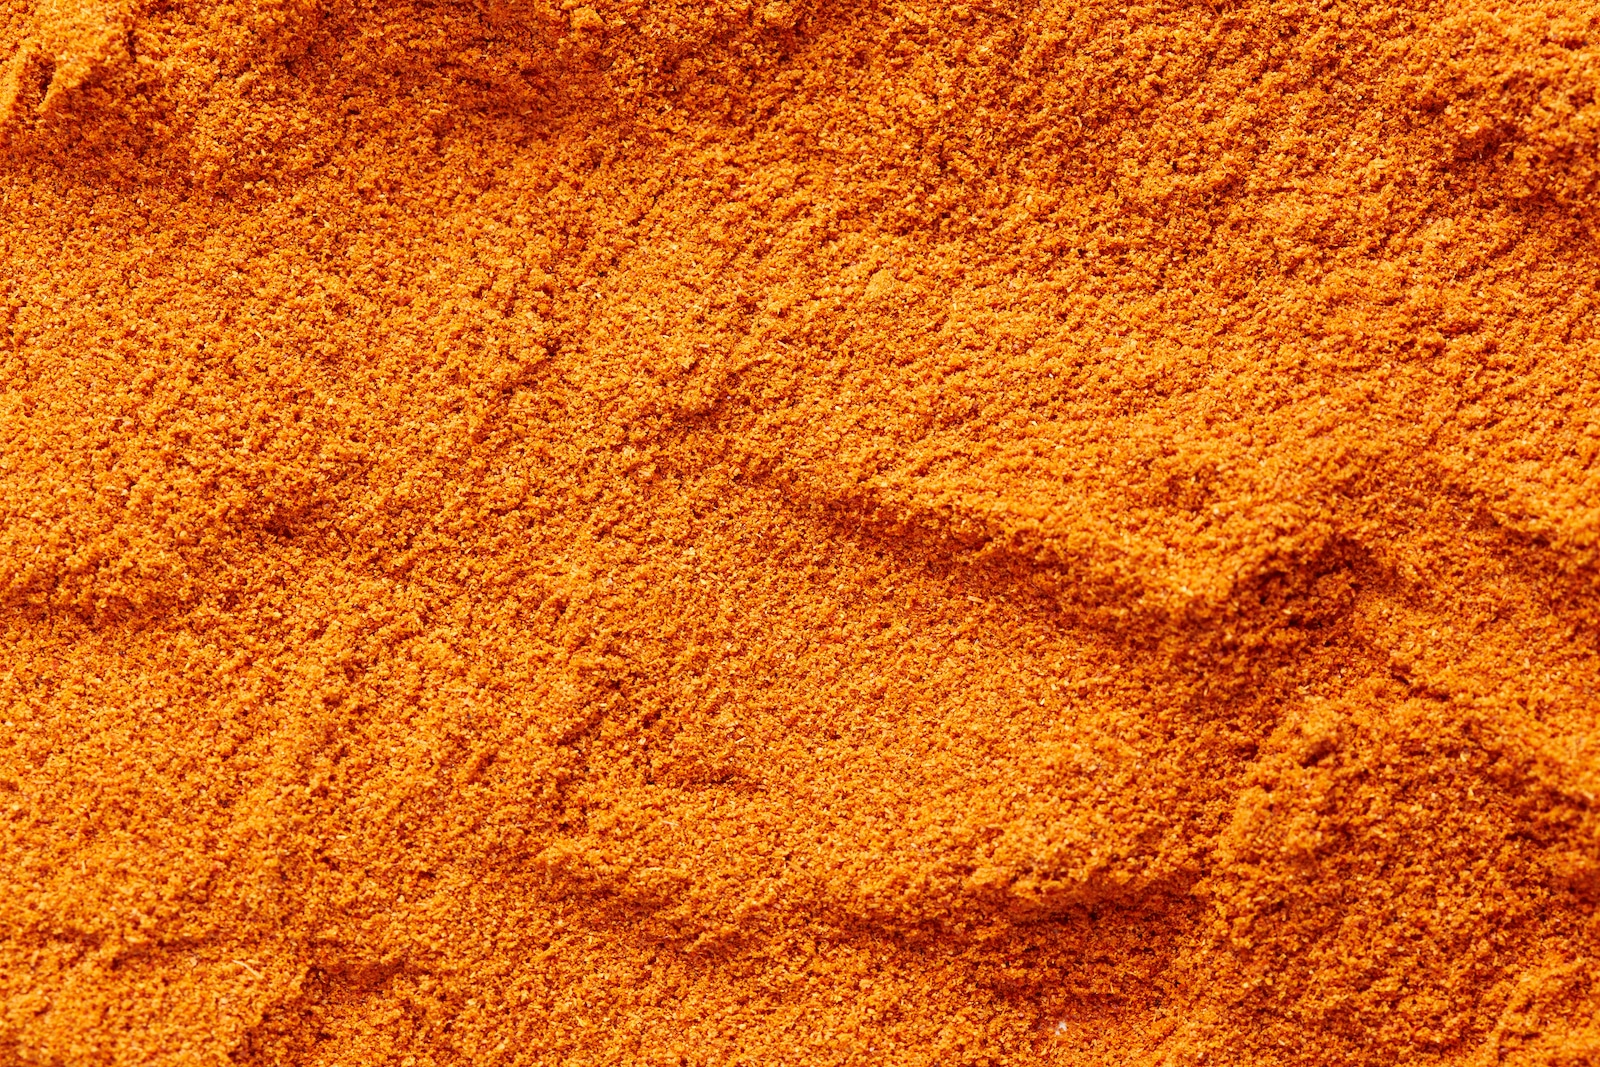 Paprika Nutrition: How Healthy Is It?